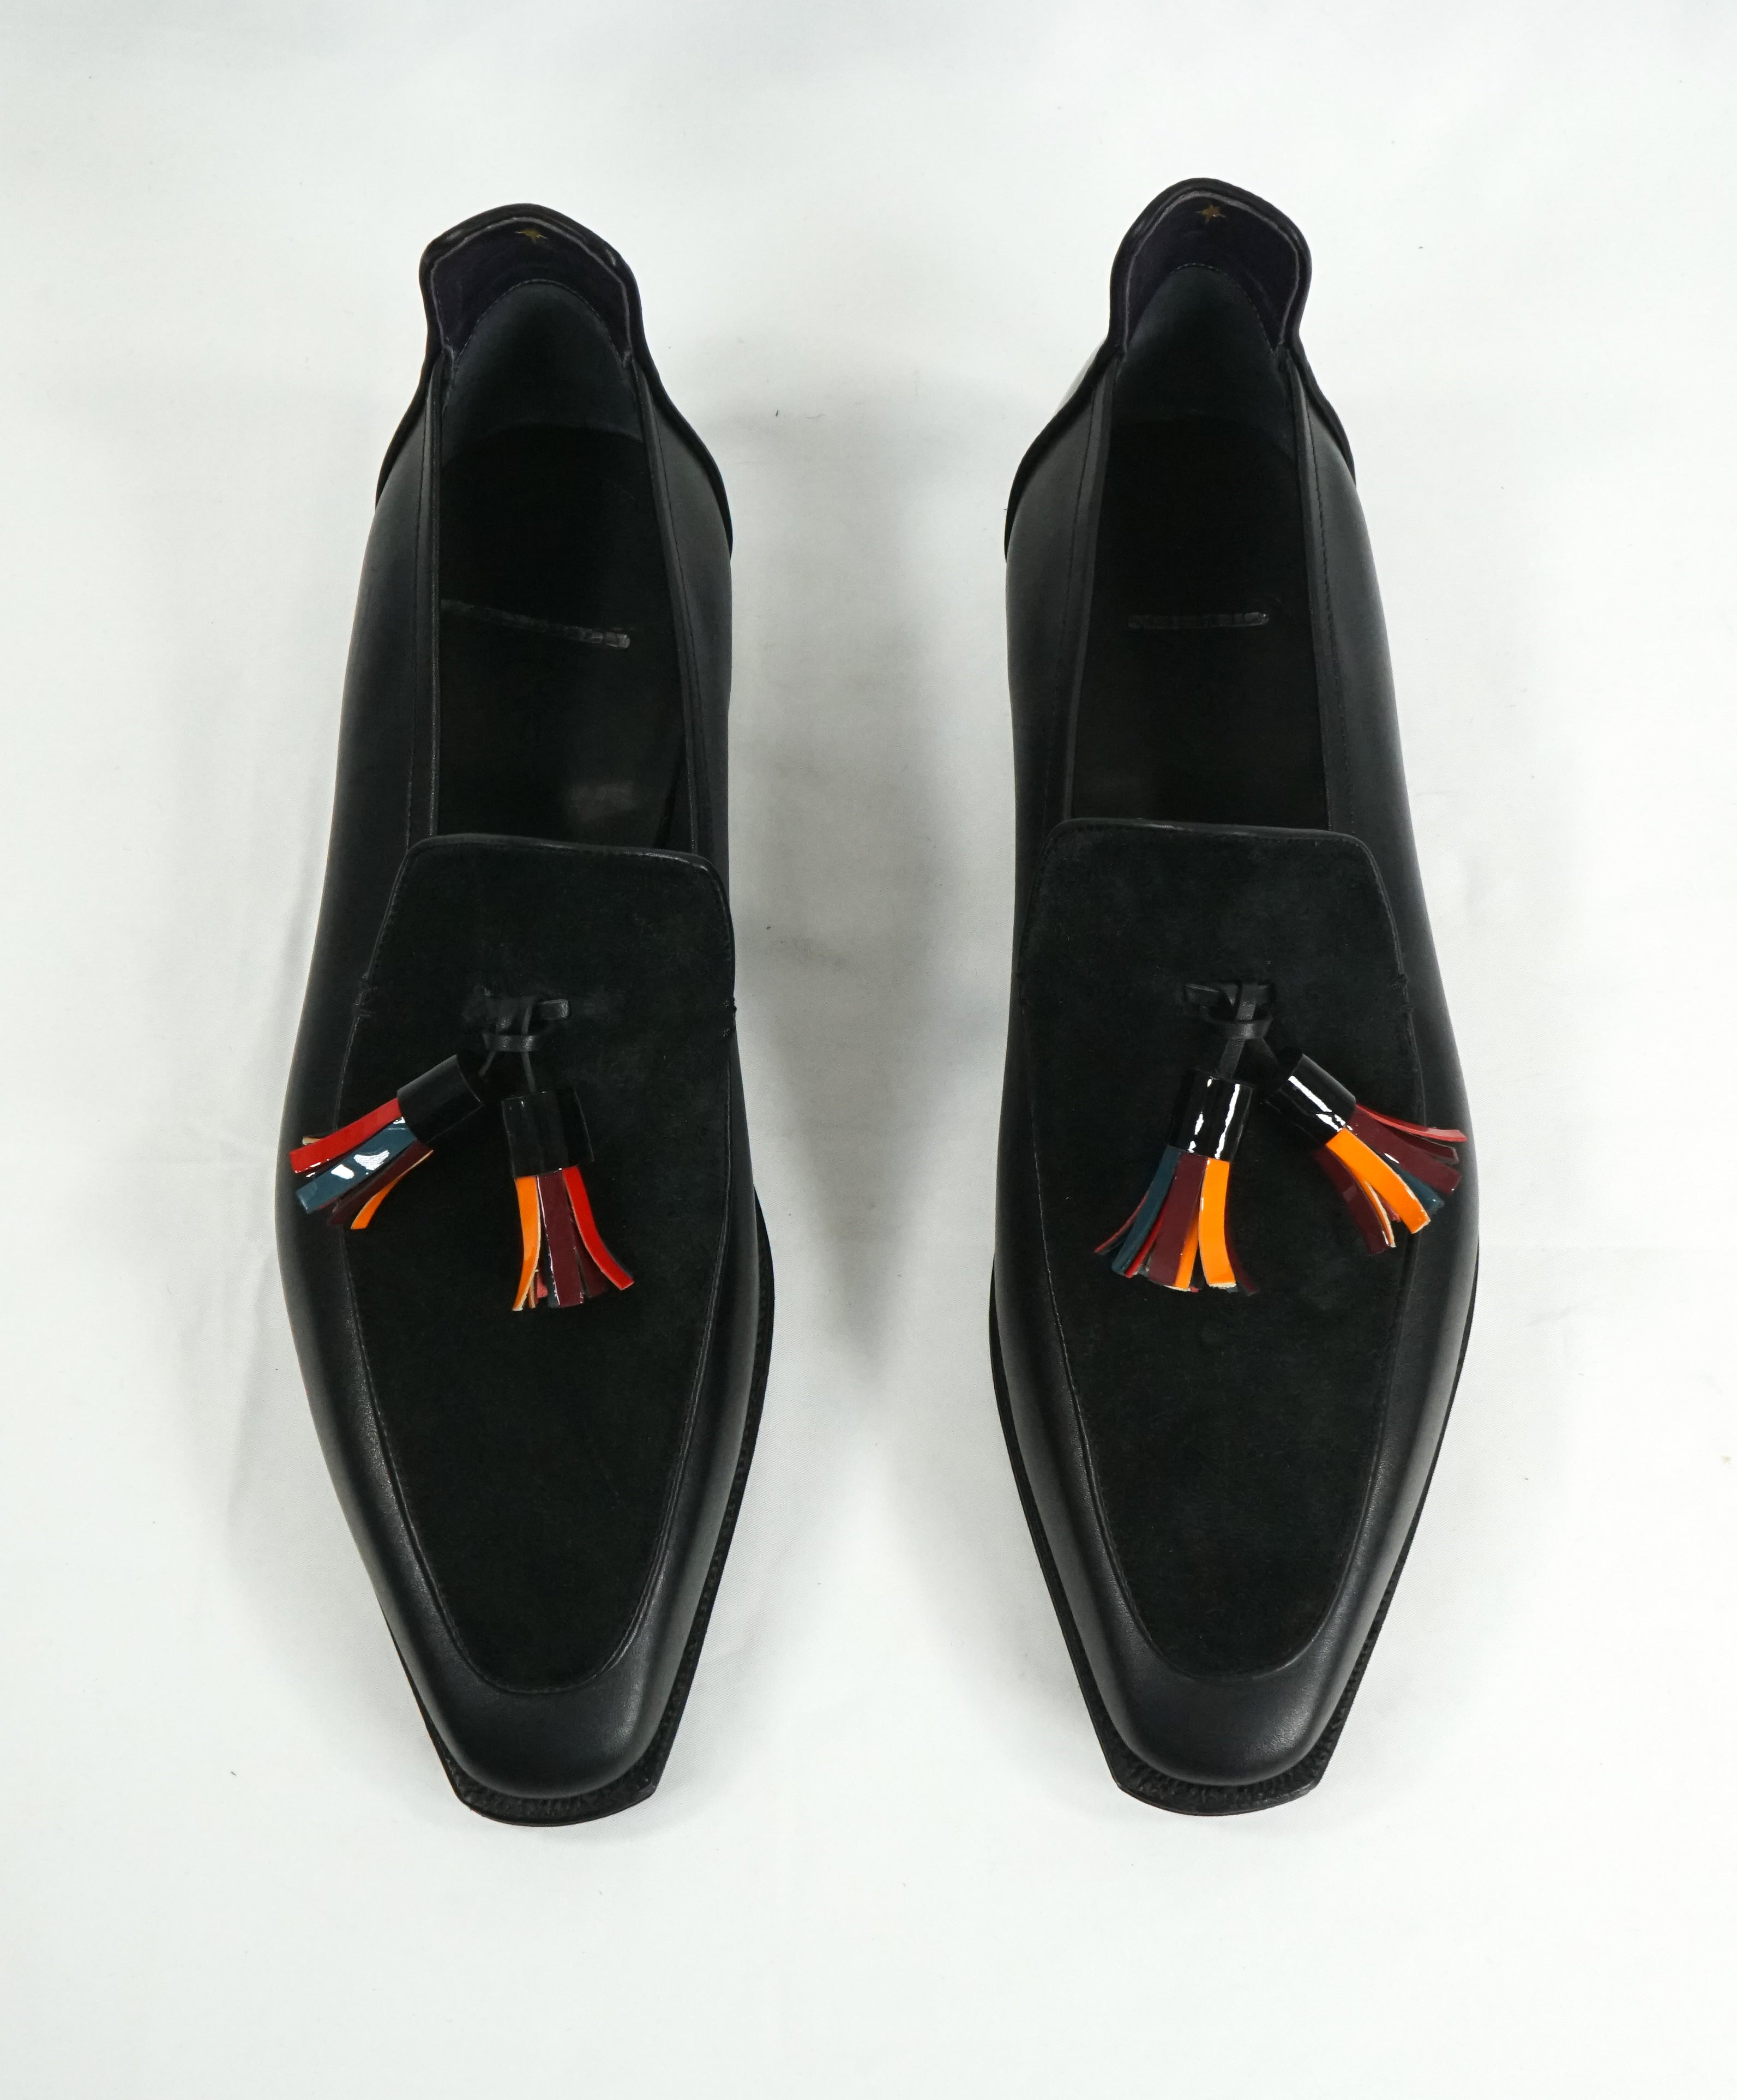 CORTHAY -LIMITED EDITION Brighton Tassel Pullman Loafers Black - 10